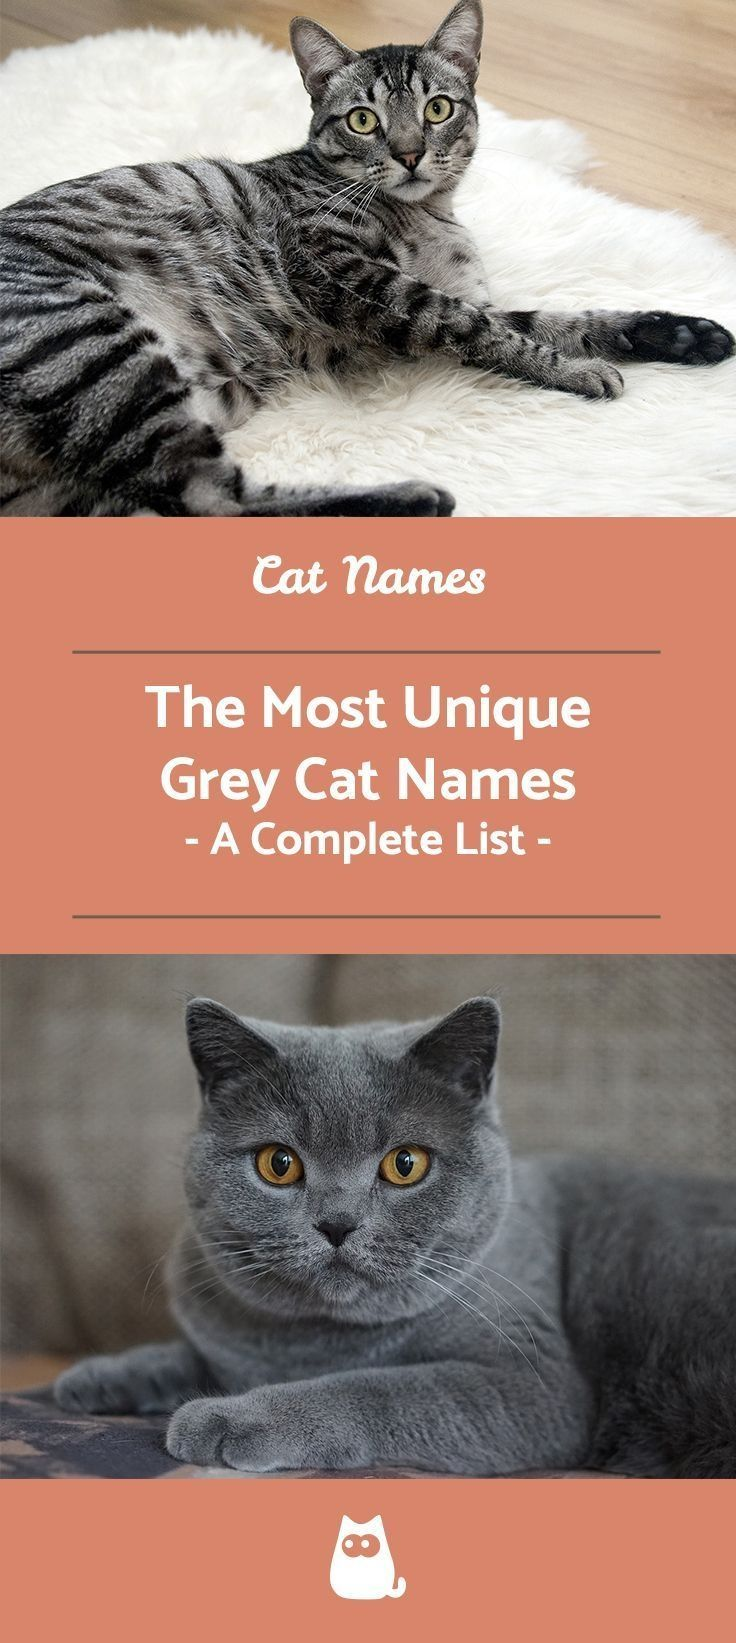 Tabby Cats Grey 12 Cool Female Cat Names In 2020 With Images Grey Cat Names Grey Cat Breeds Cute Cat Names